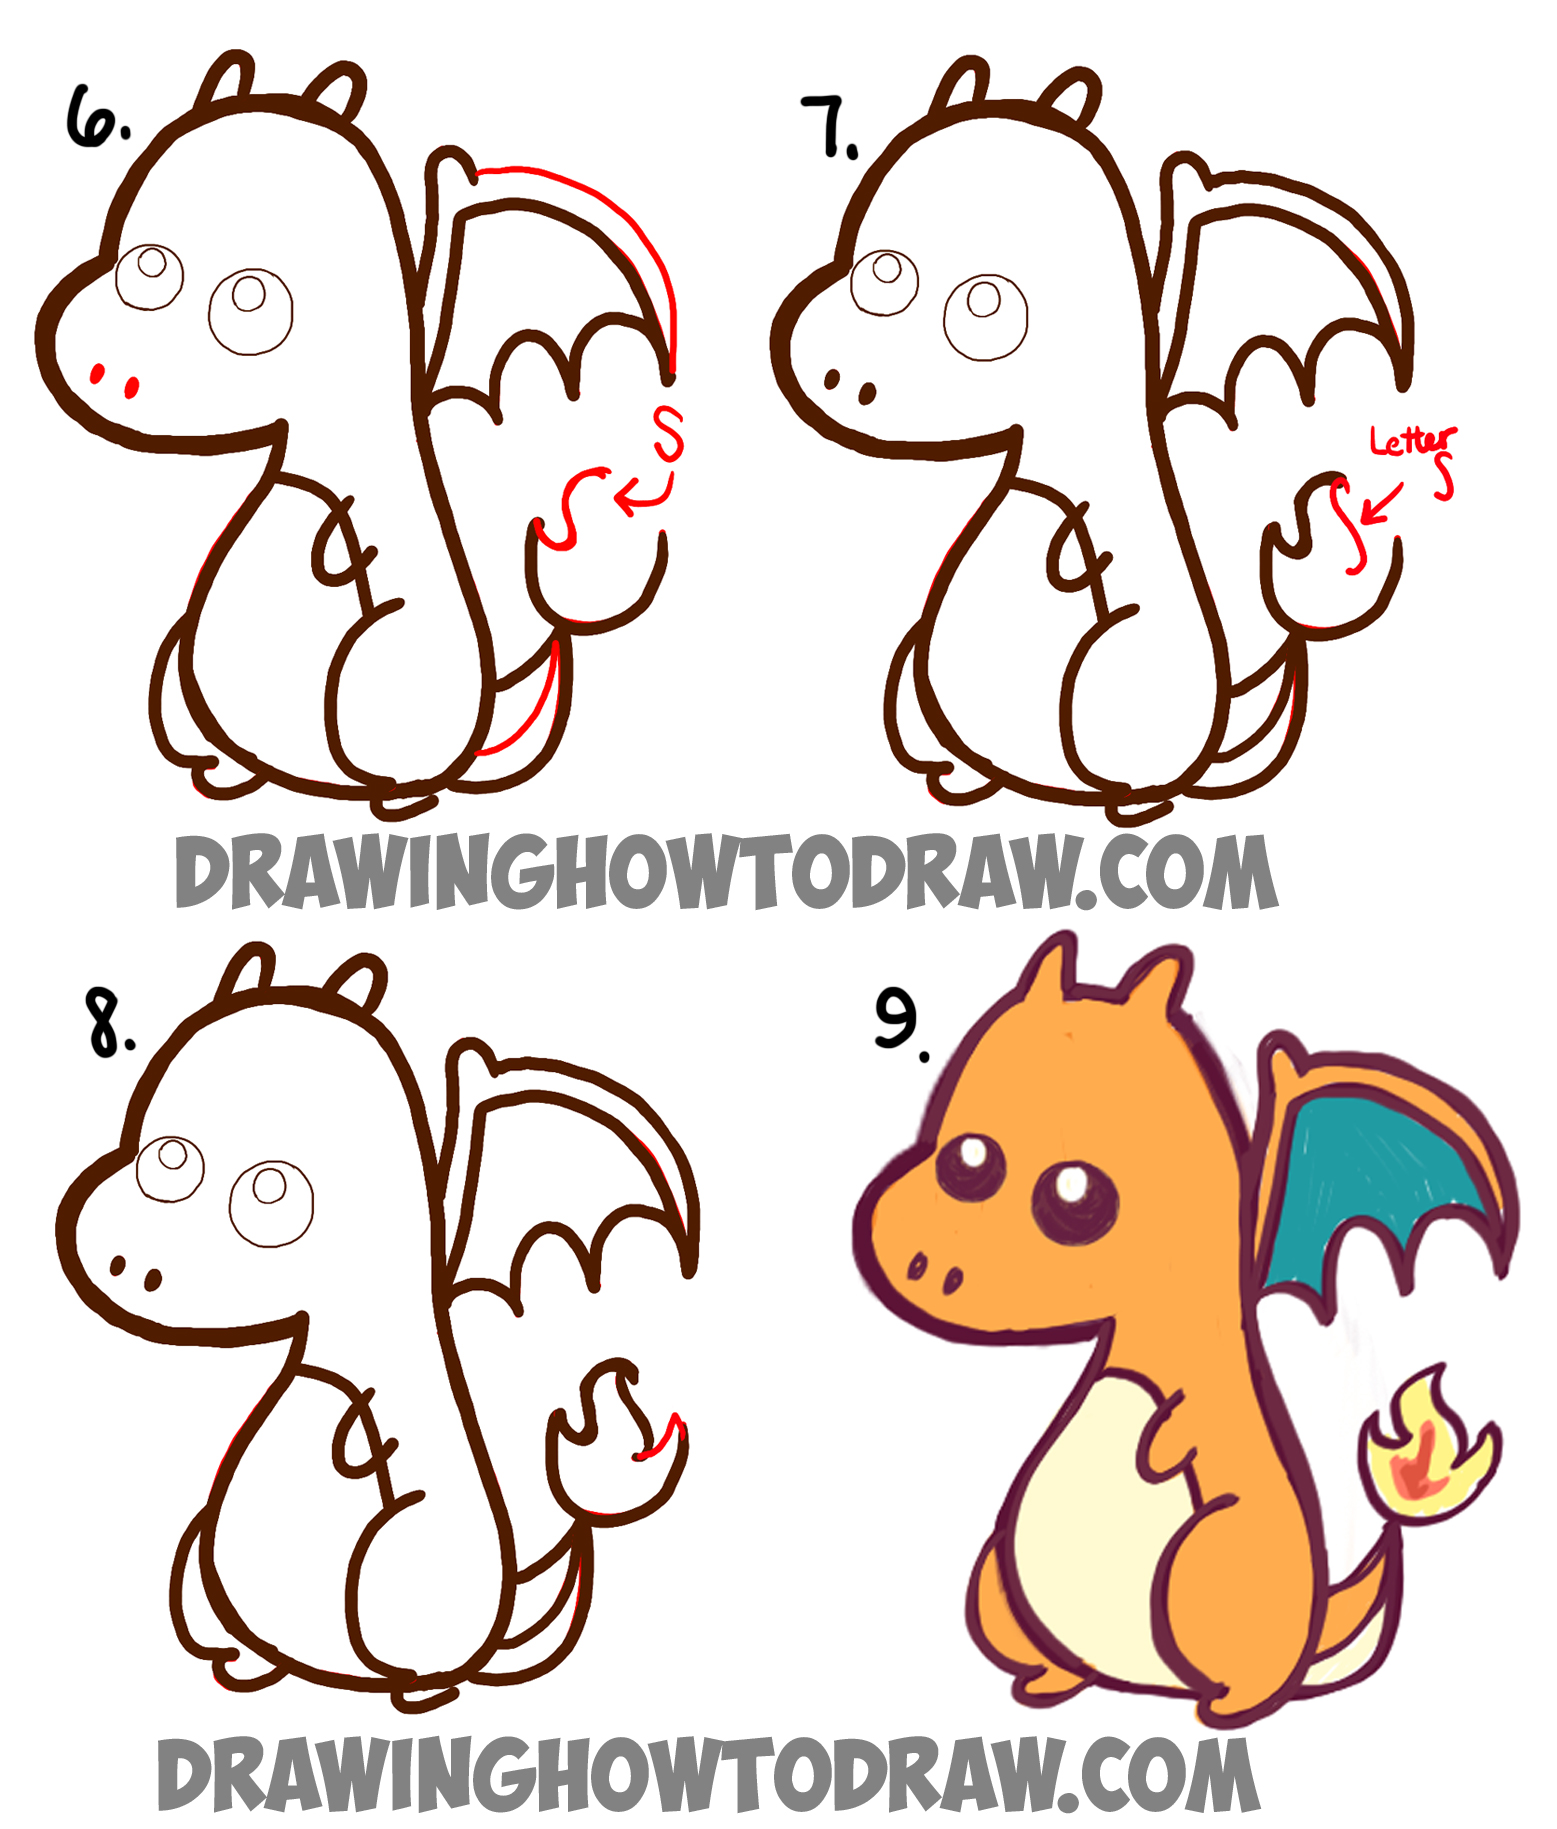 learn how to draw a cute chibi charizard easy step by step drawing tutorial